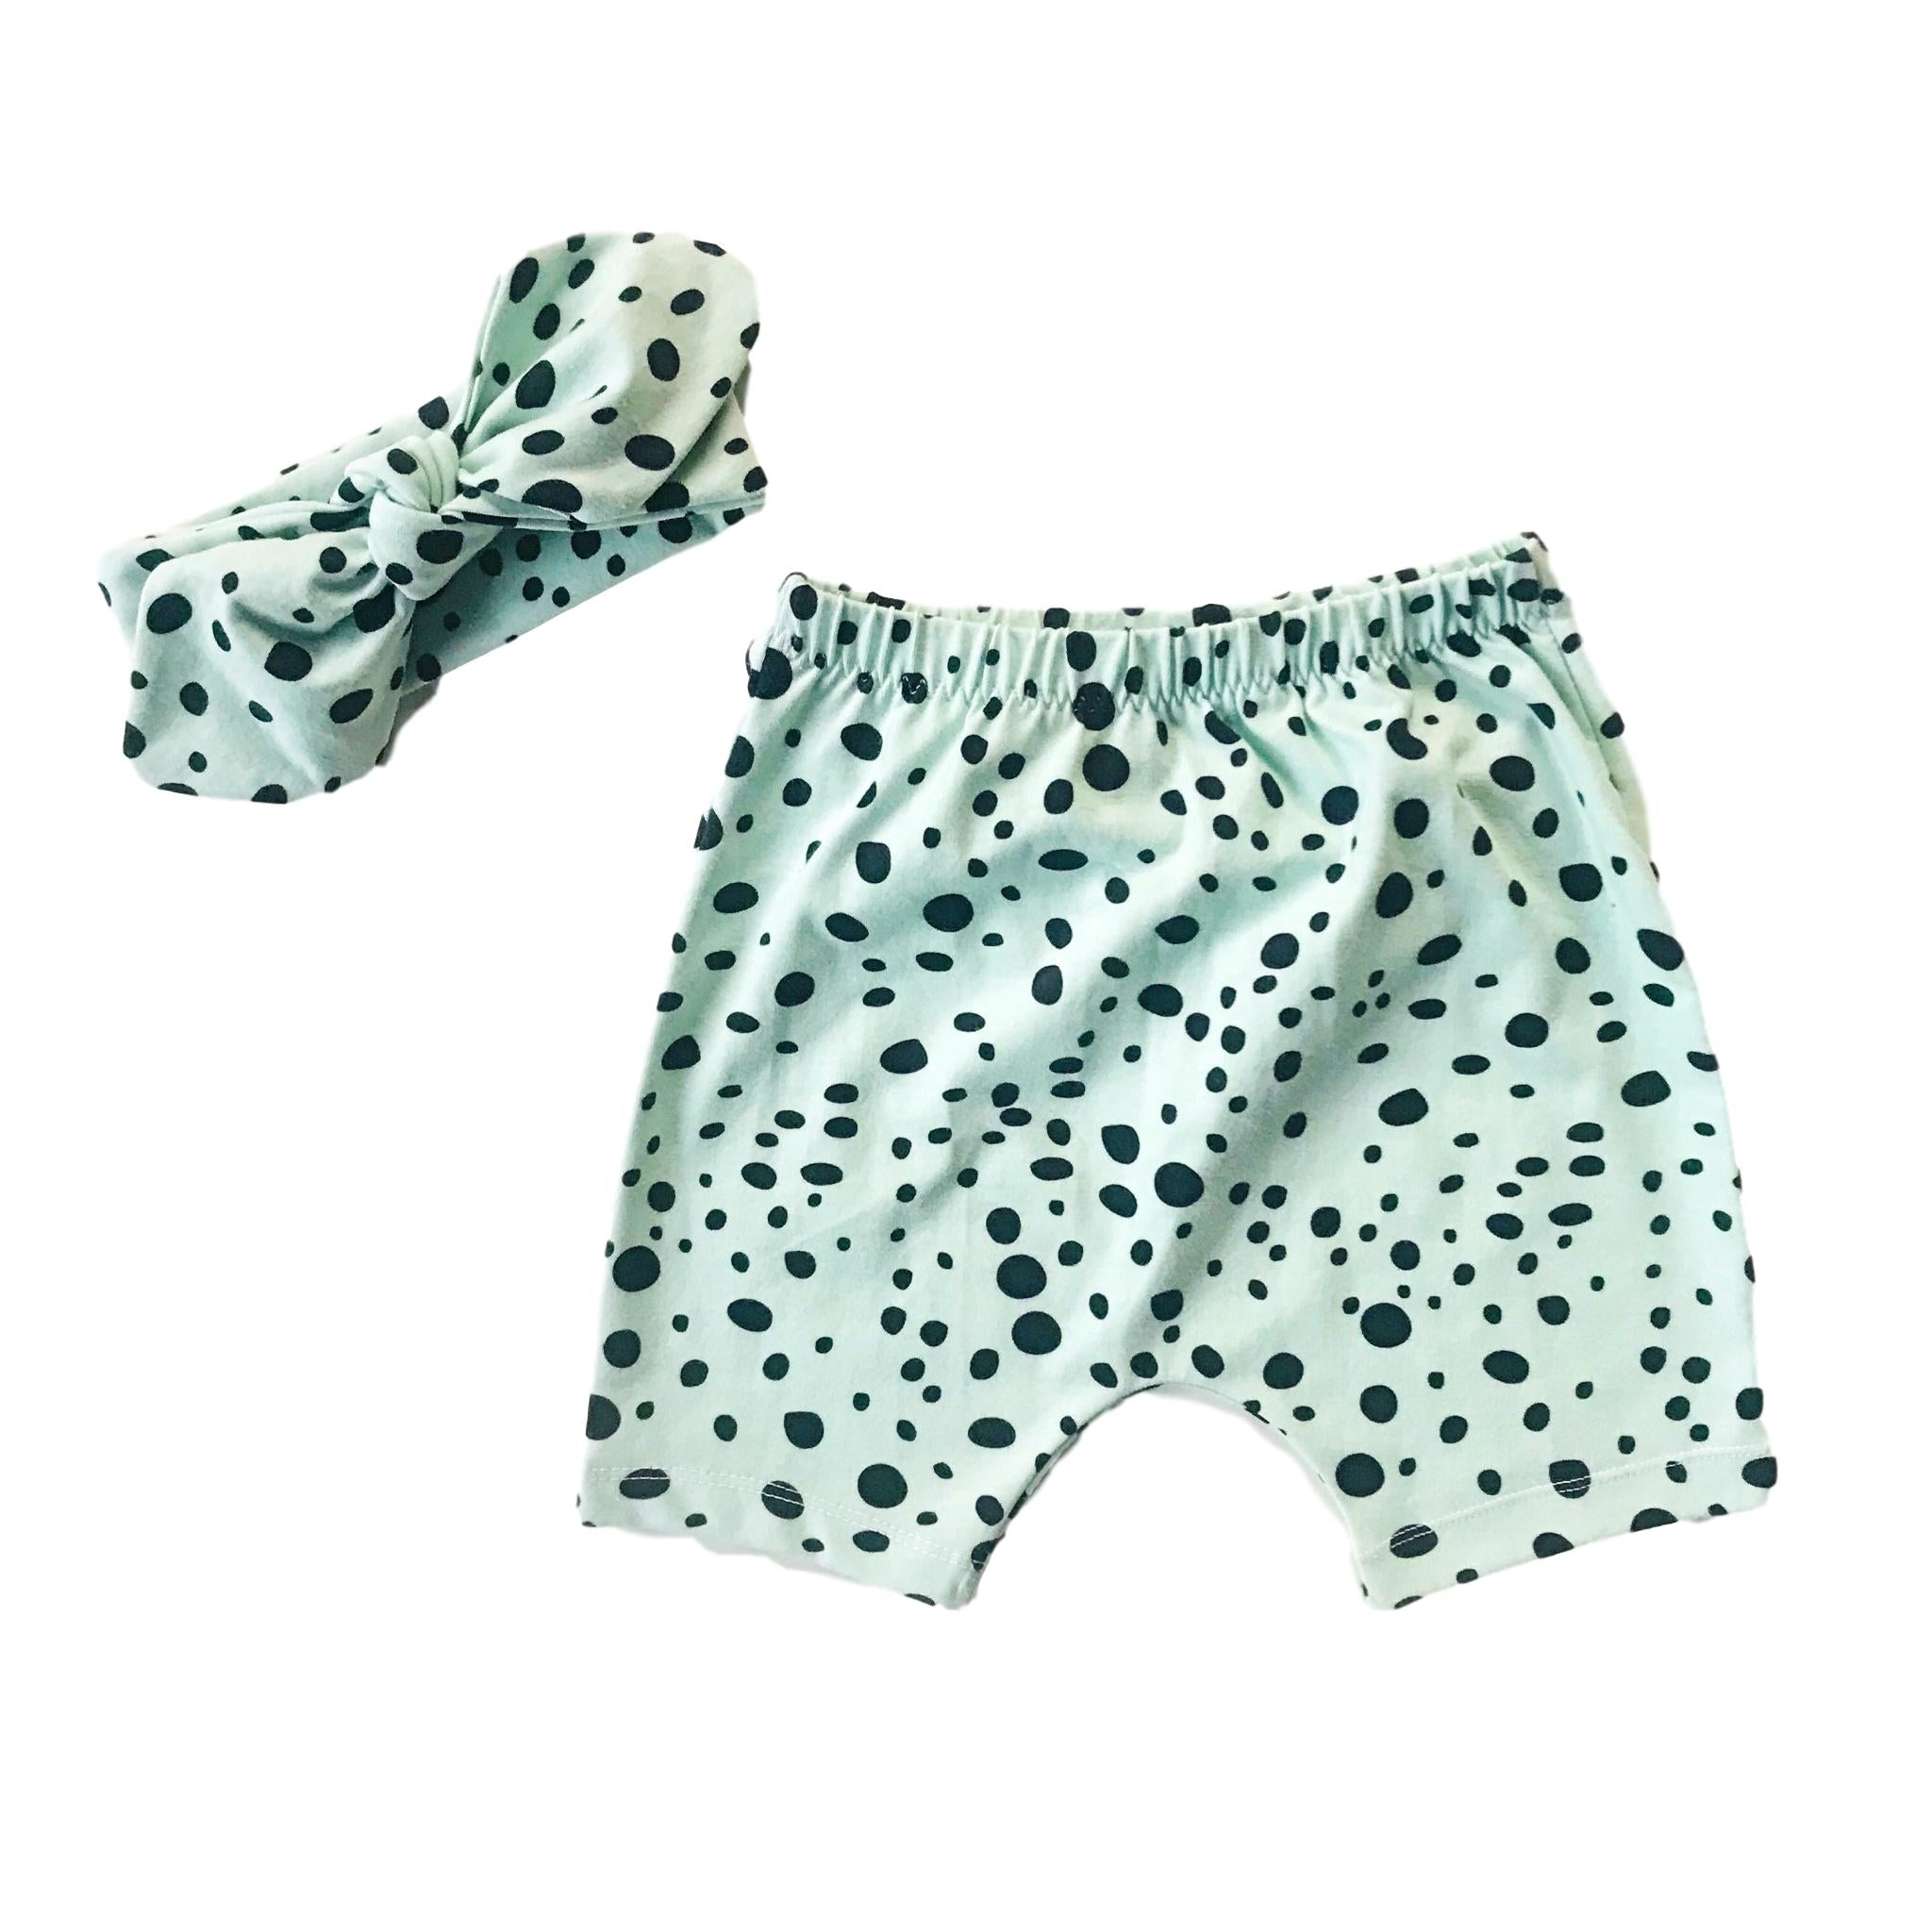 Organic Dots Cotton Shorts in Mint